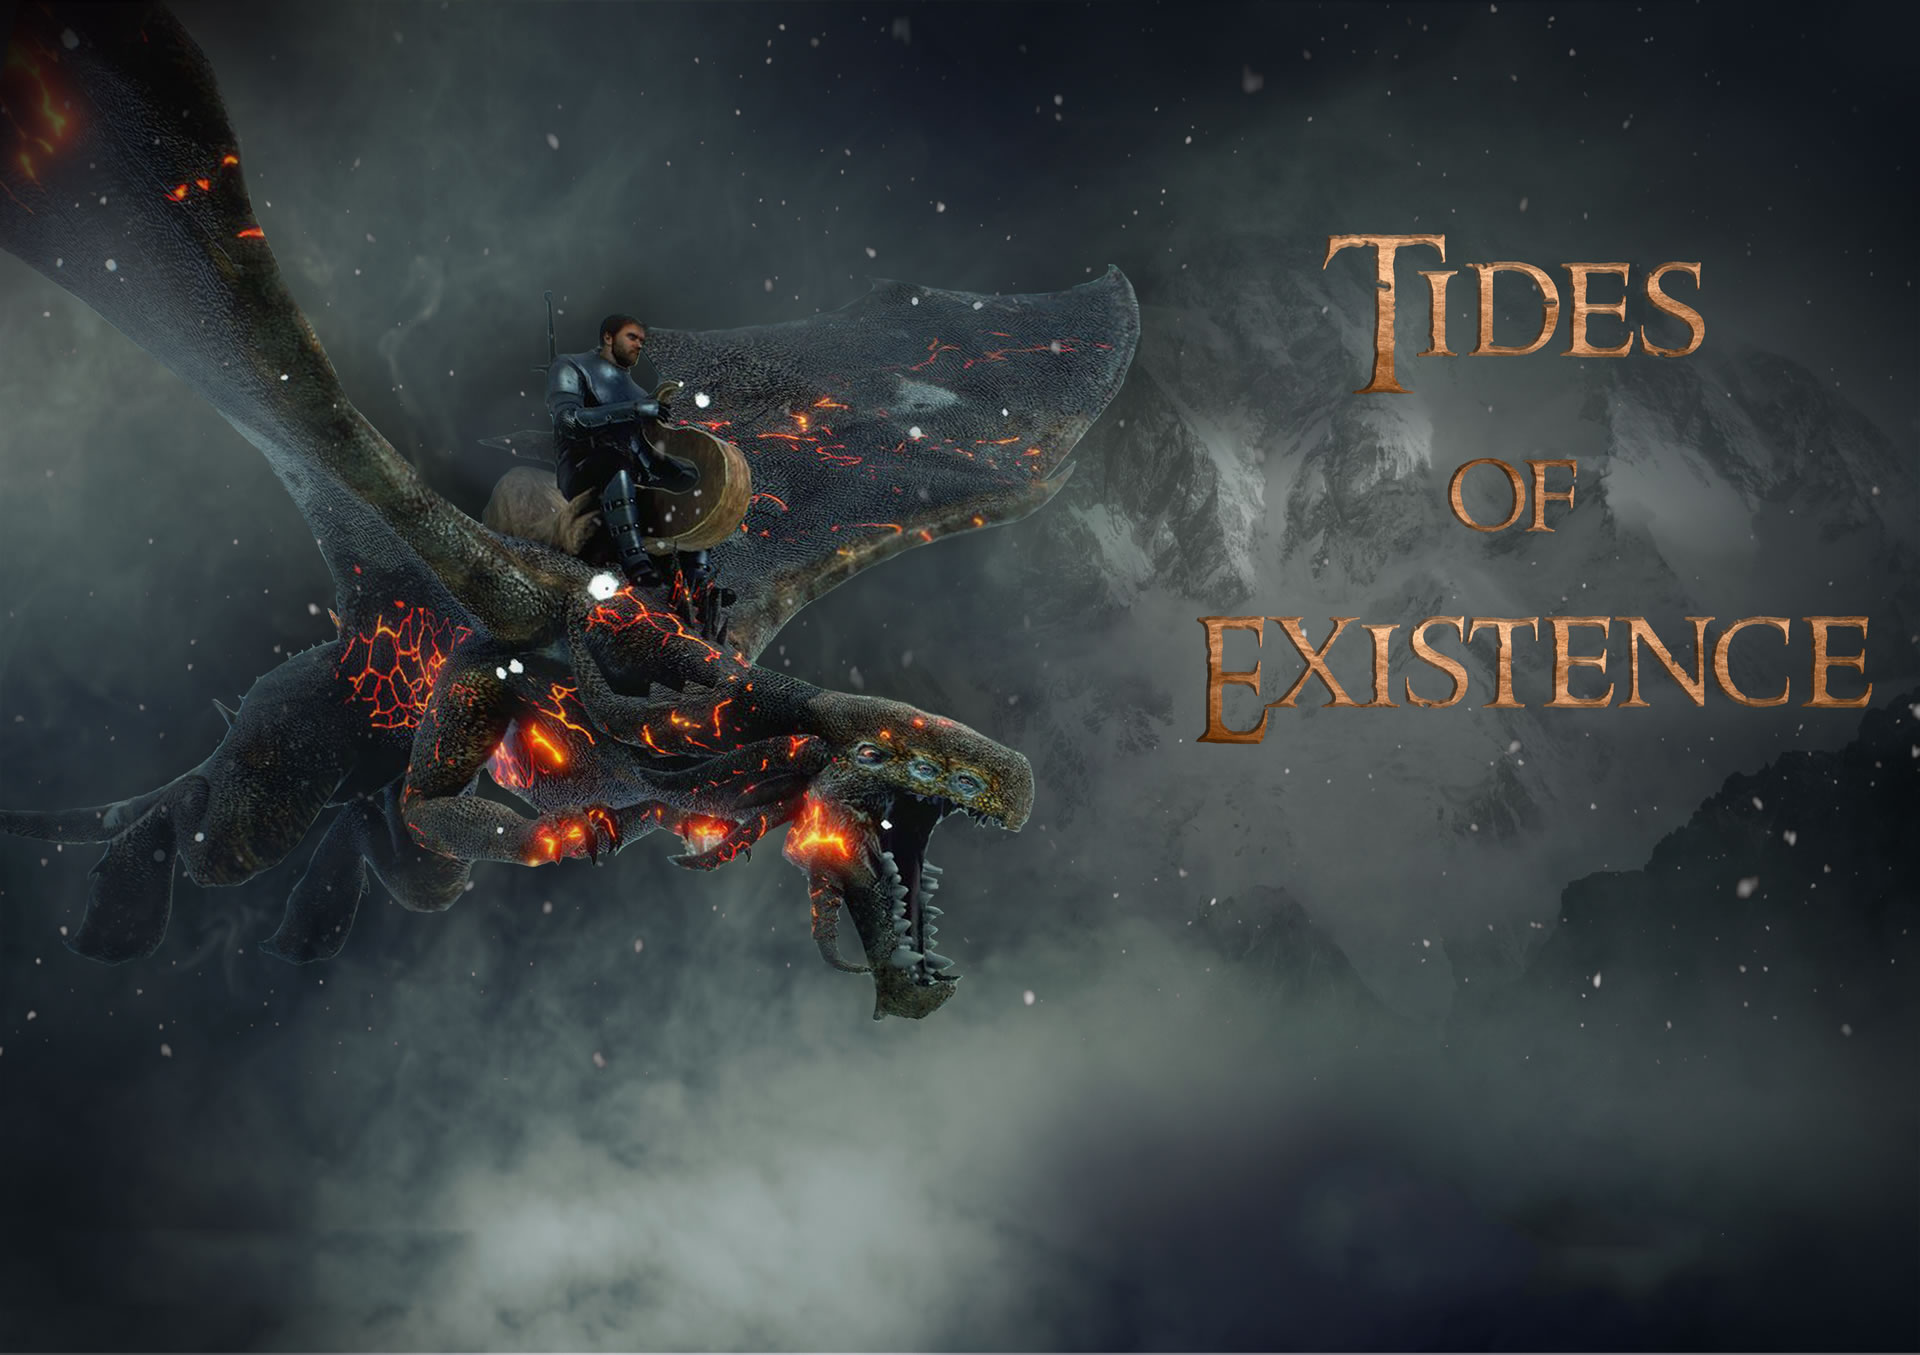 Tides of Existence